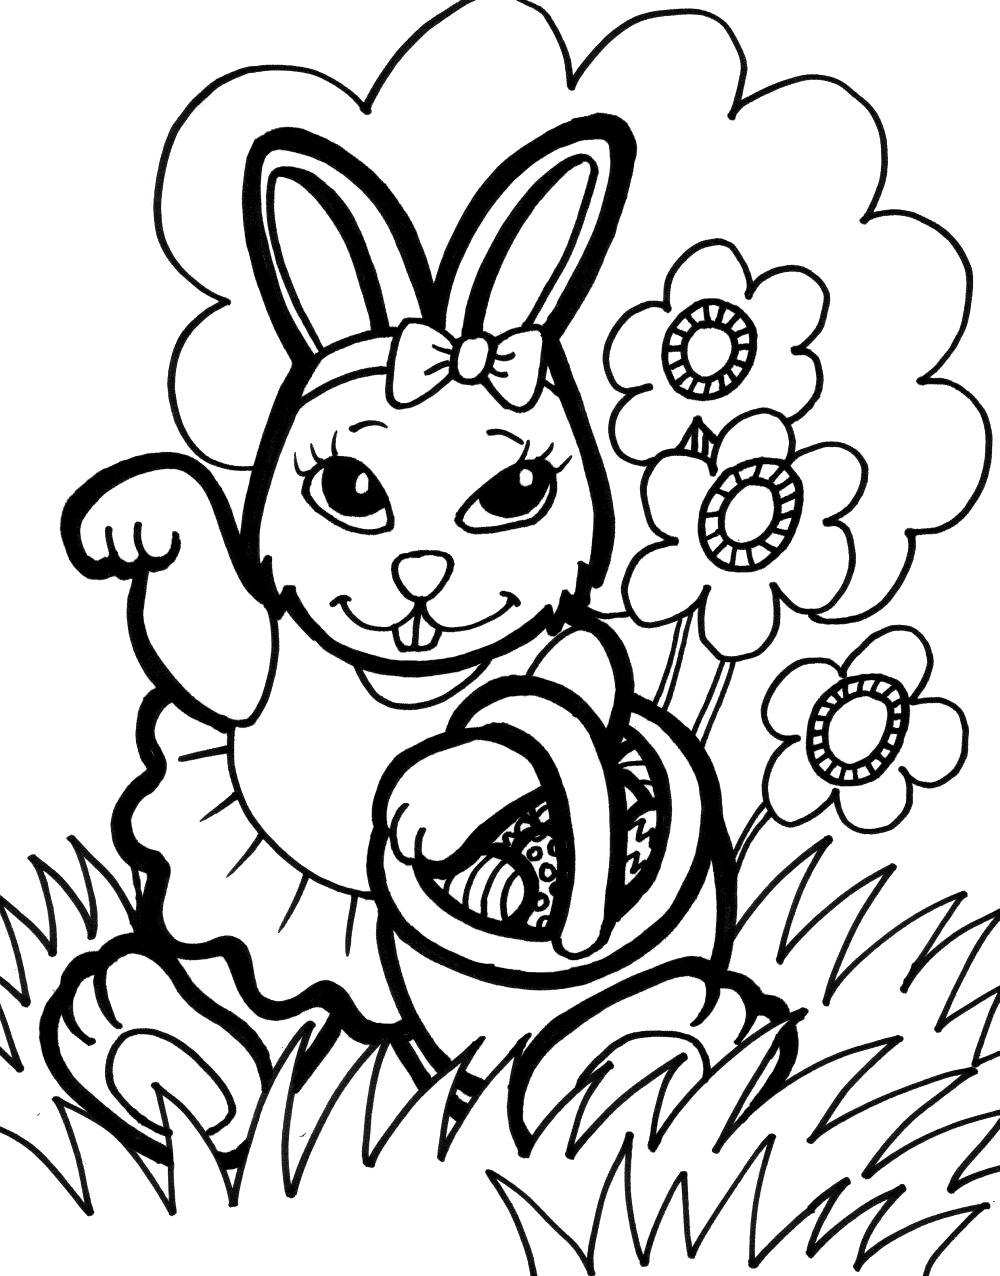 bunny coloring pages rabbit to download for free rabbit kids coloring pages pages coloring bunny